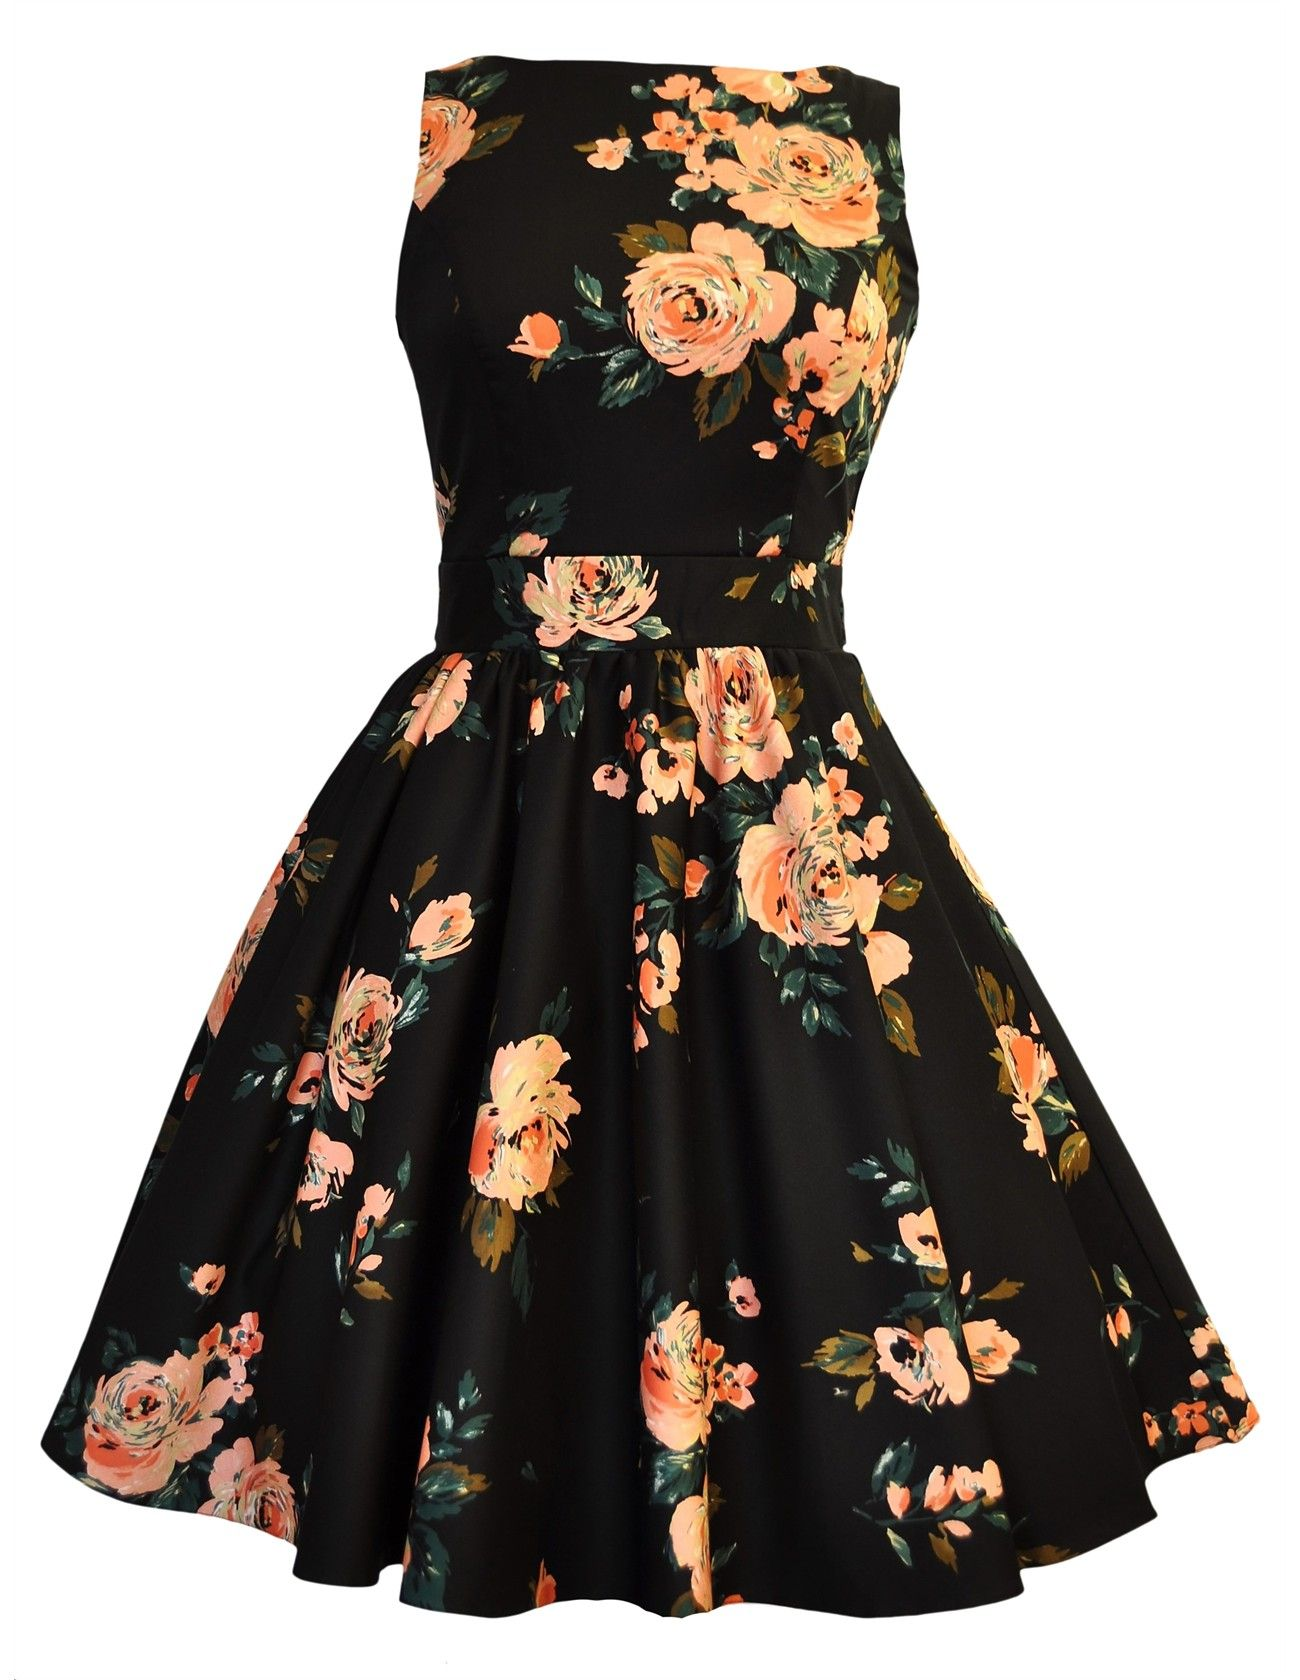 Black u pink rose print tea dress moda pinterest pink roses